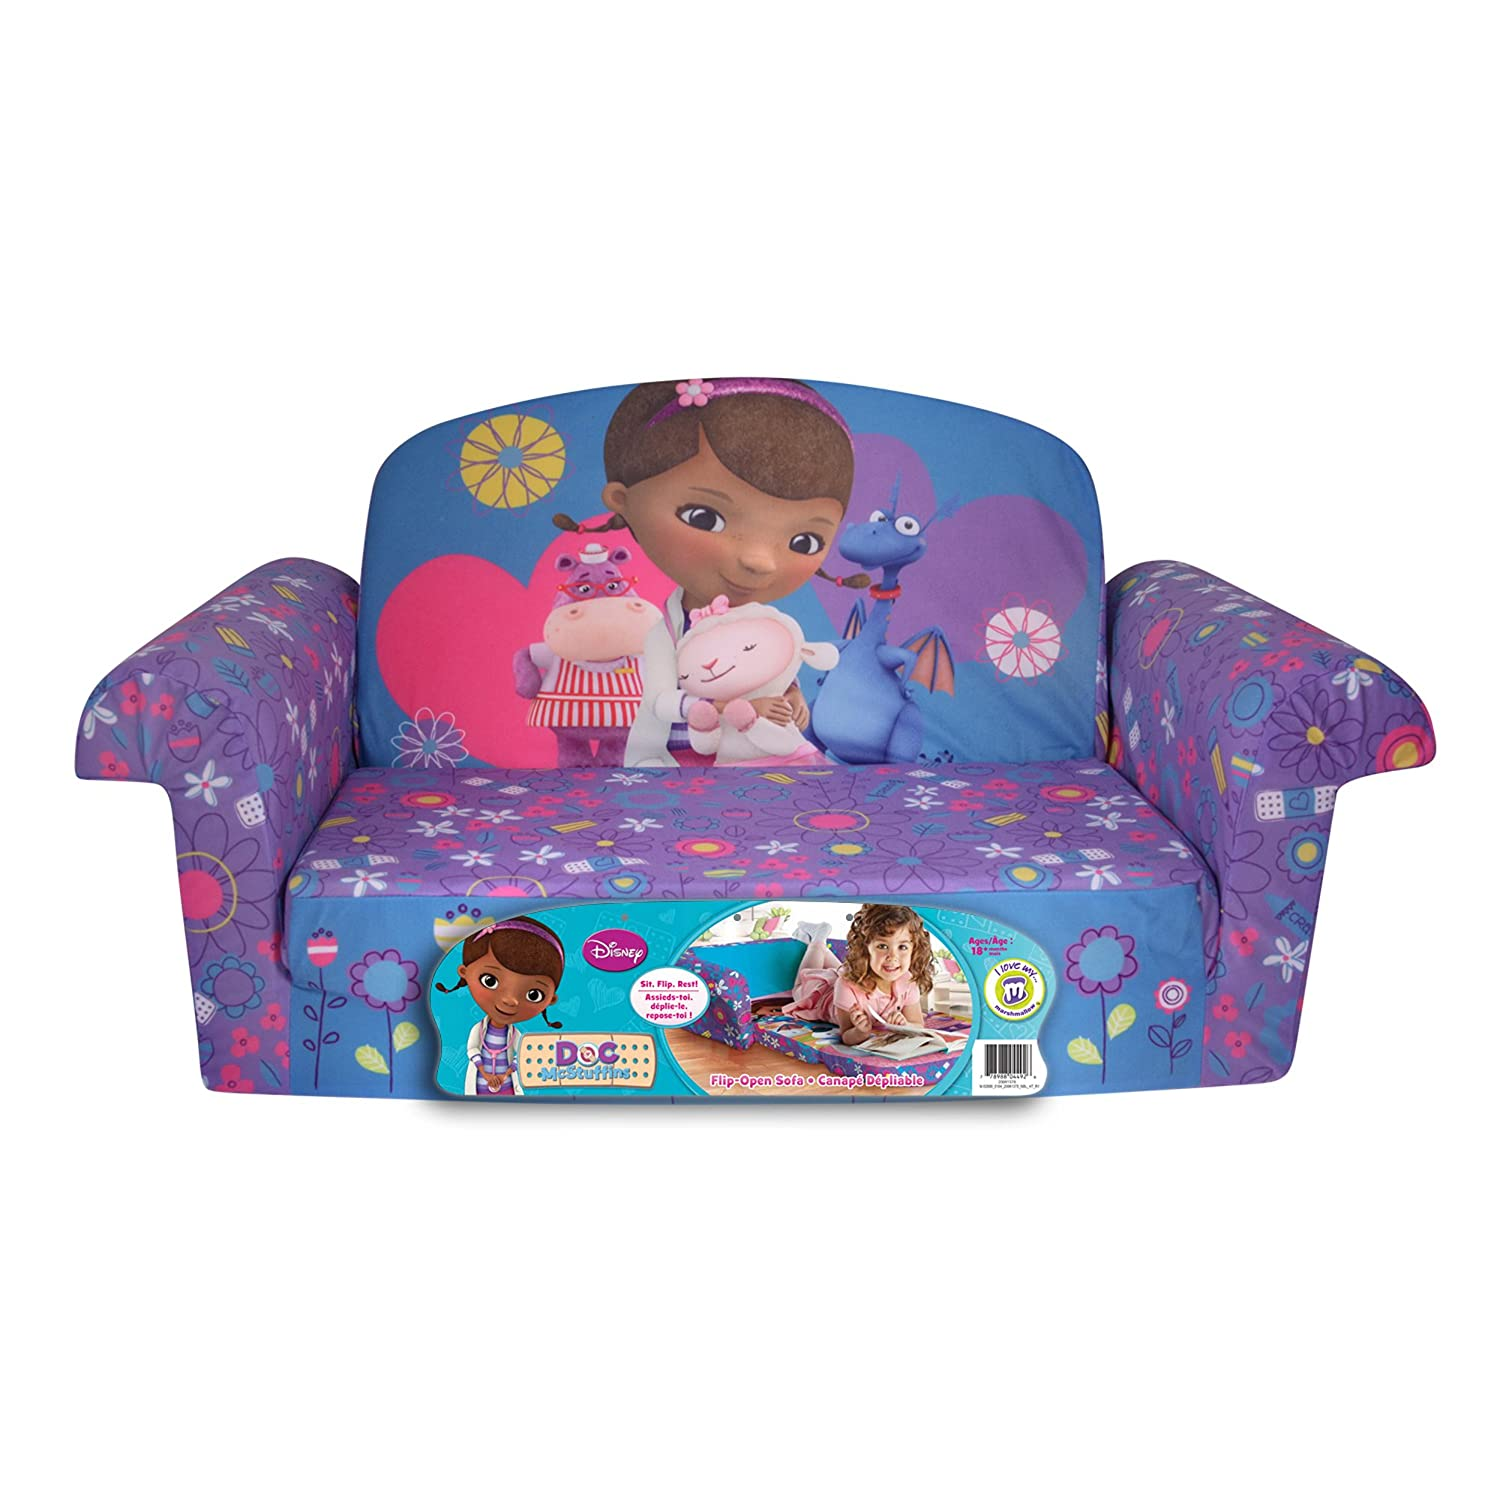 Fun sofa beds for kids and teens christmas gifts for everyone Toddler flip out sofa couch bed